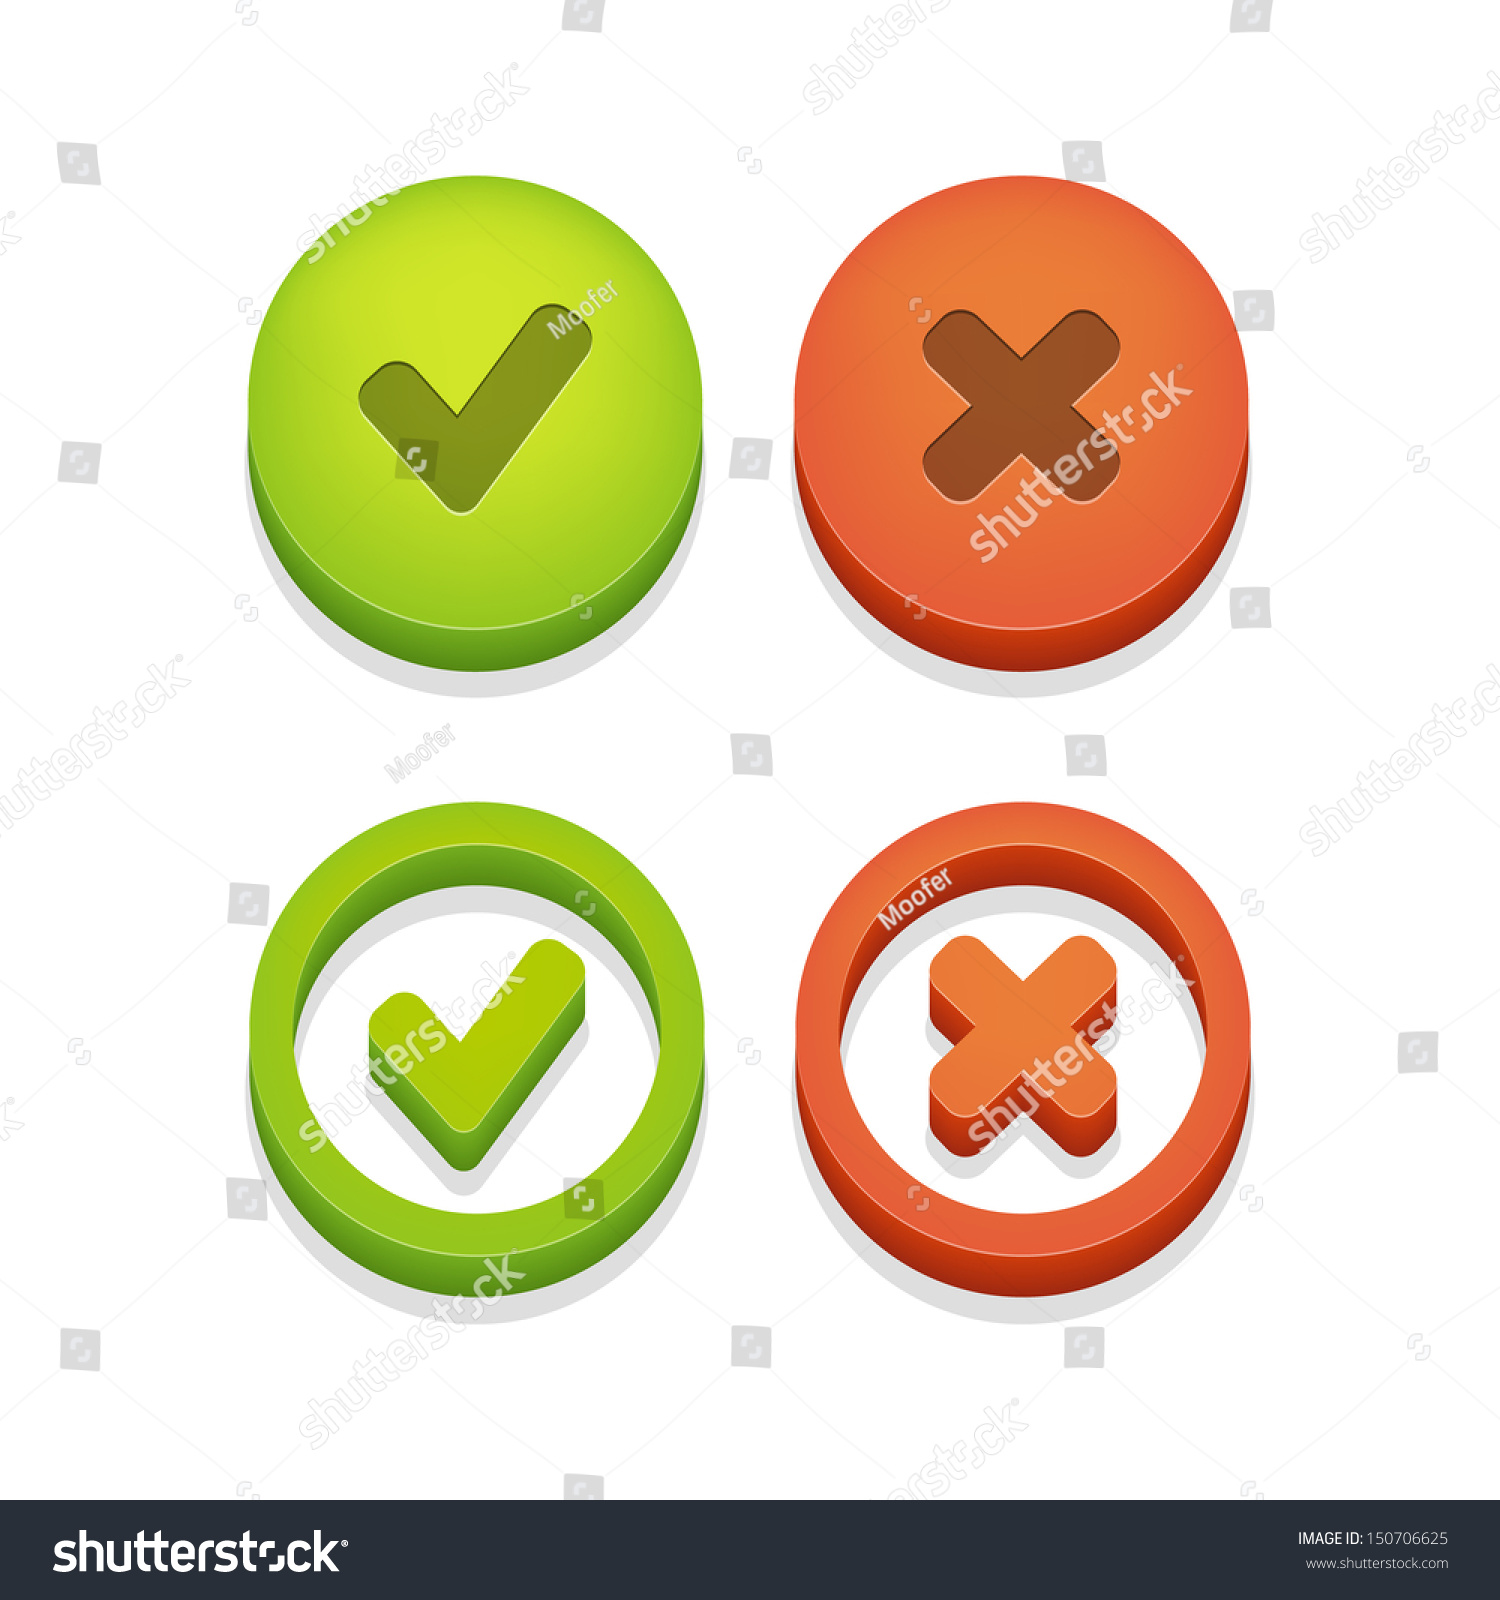 Circle check box check marks isolated stock vector 150706625 circle check box with check marks isolated on white vector illustration biocorpaavc